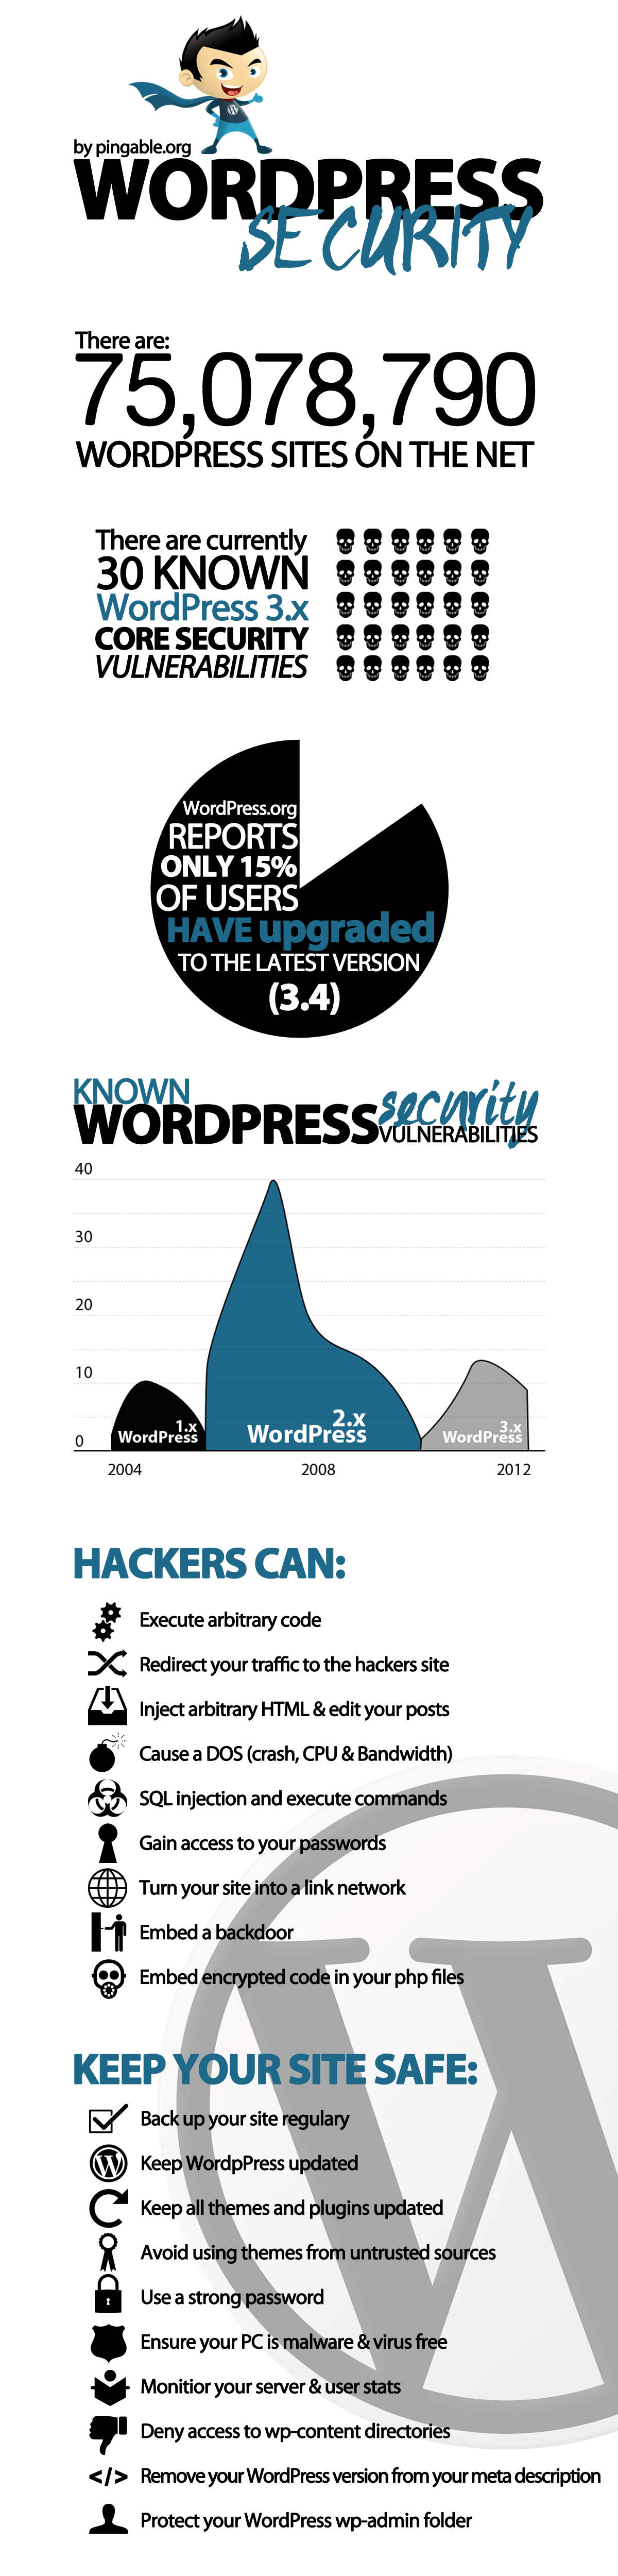 WordPress Security Inforgraphic - WordPress Security Tips